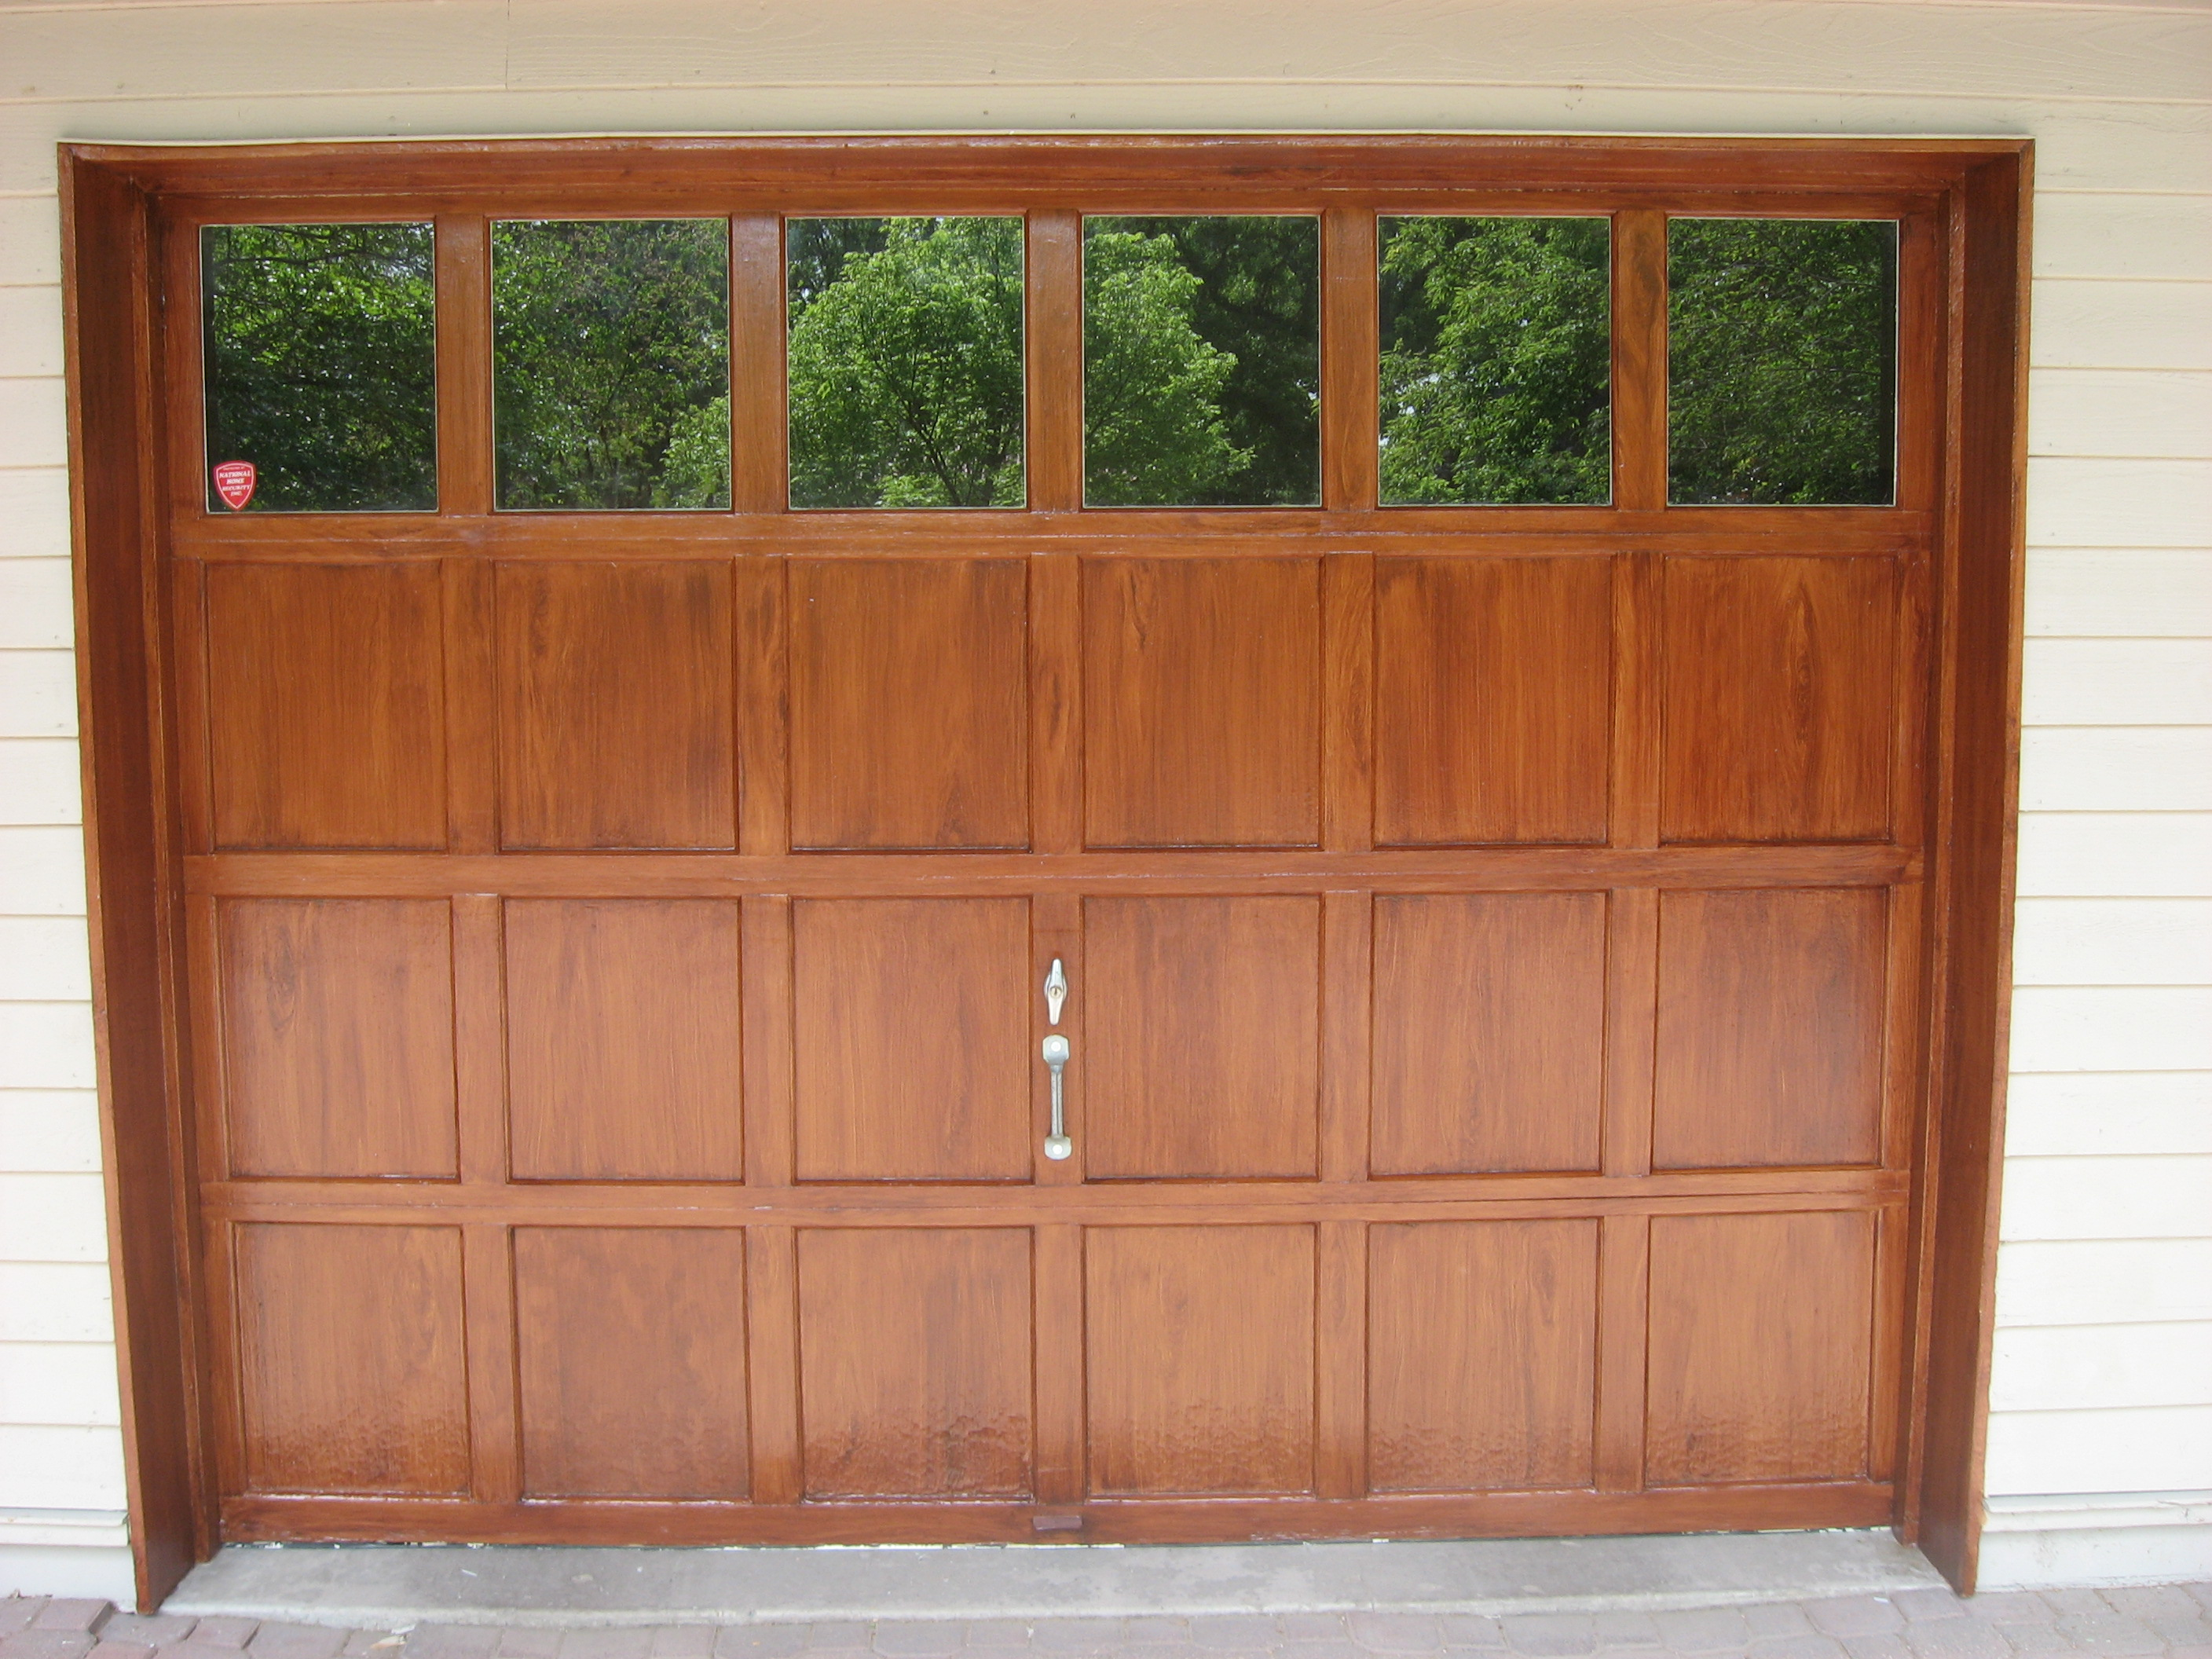 Wood Grained Garage Door